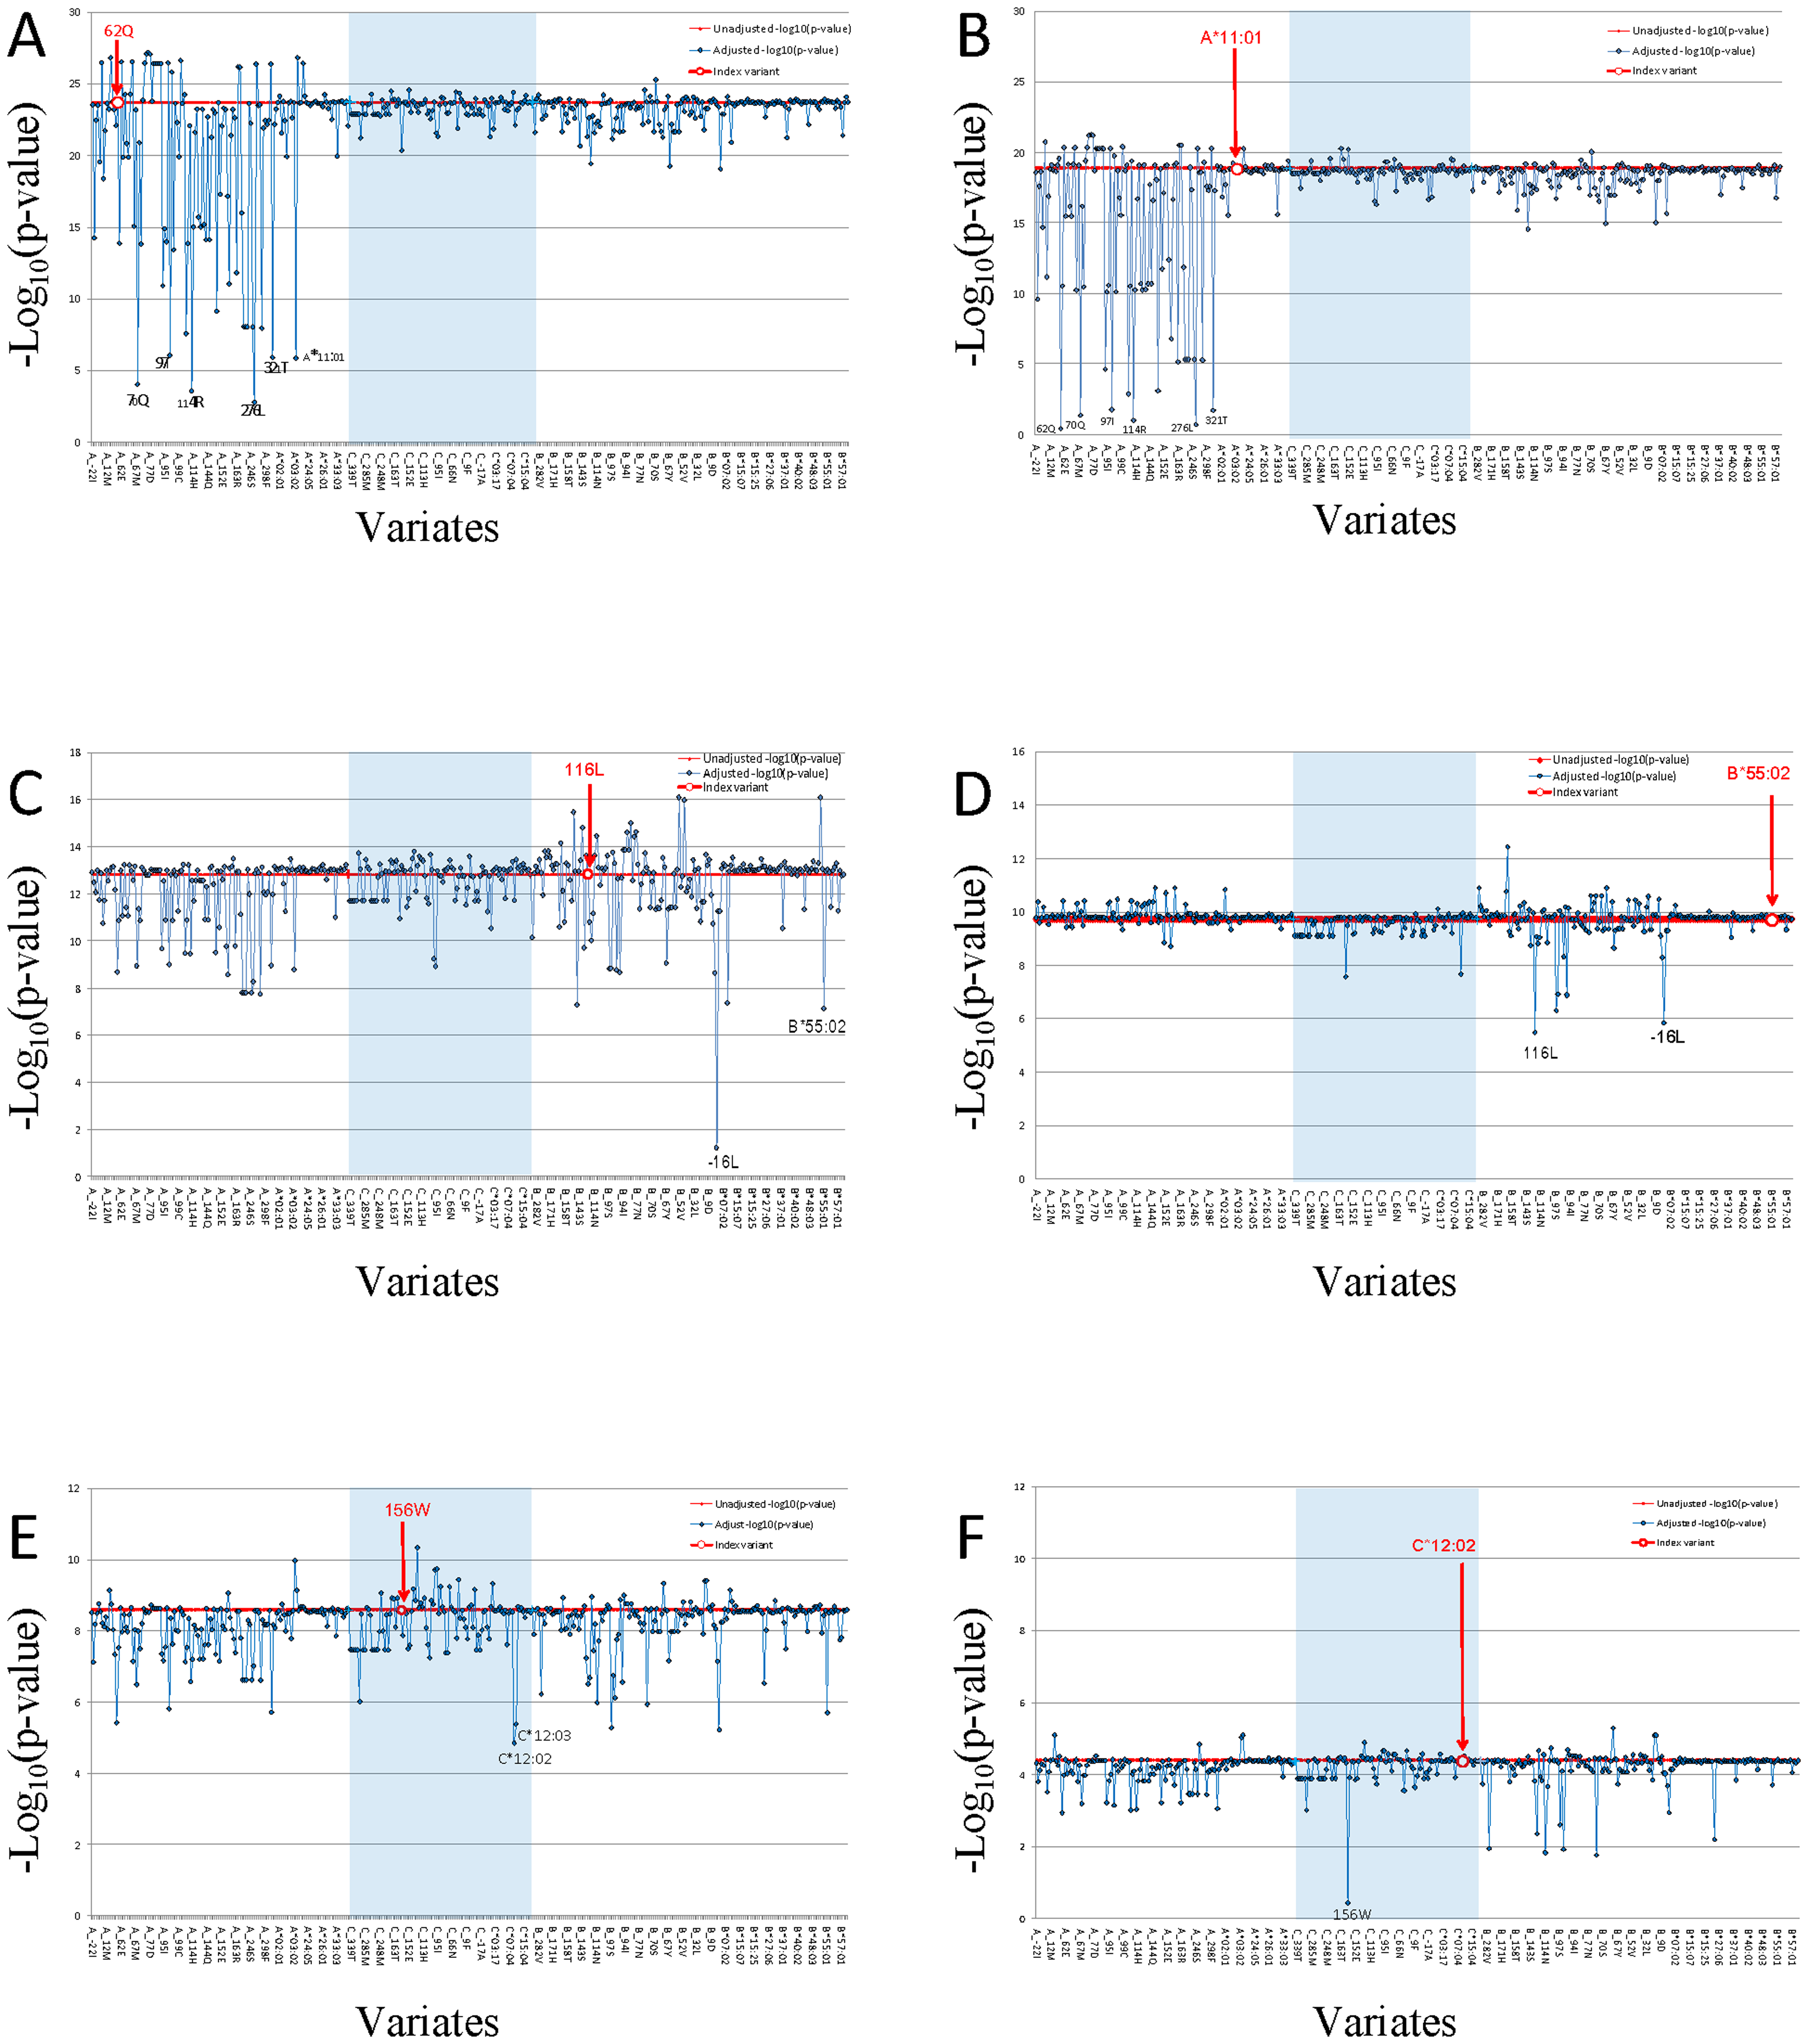 Proxy variant analysis for the strongest aa-variants or HLA allele in HLA-A, in HLA-B, and in HLA-C.